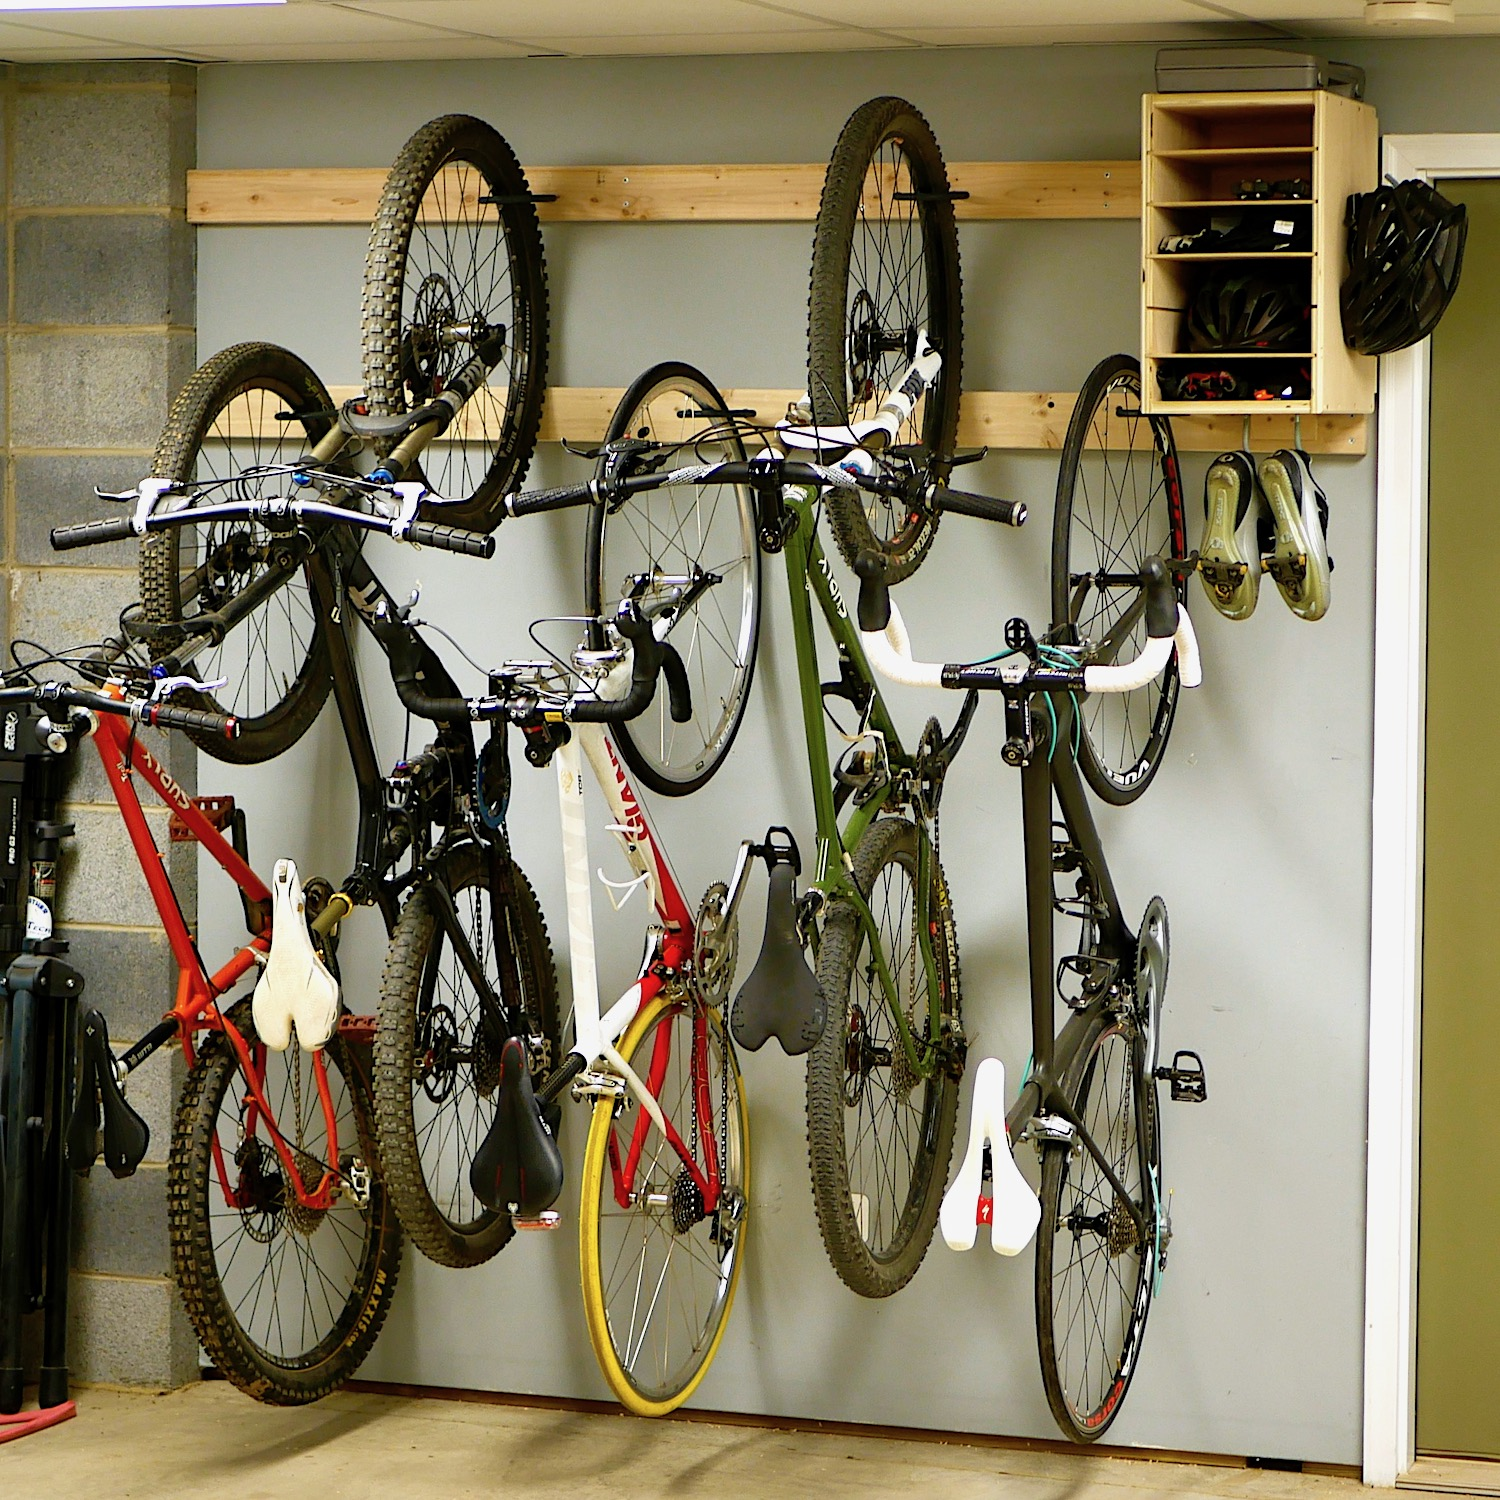 Diy bicycle rack Back An Error Occurred Crafted Workshop How To Make Diy Bike Rack For 20 Bike Storage Stand Cabinet